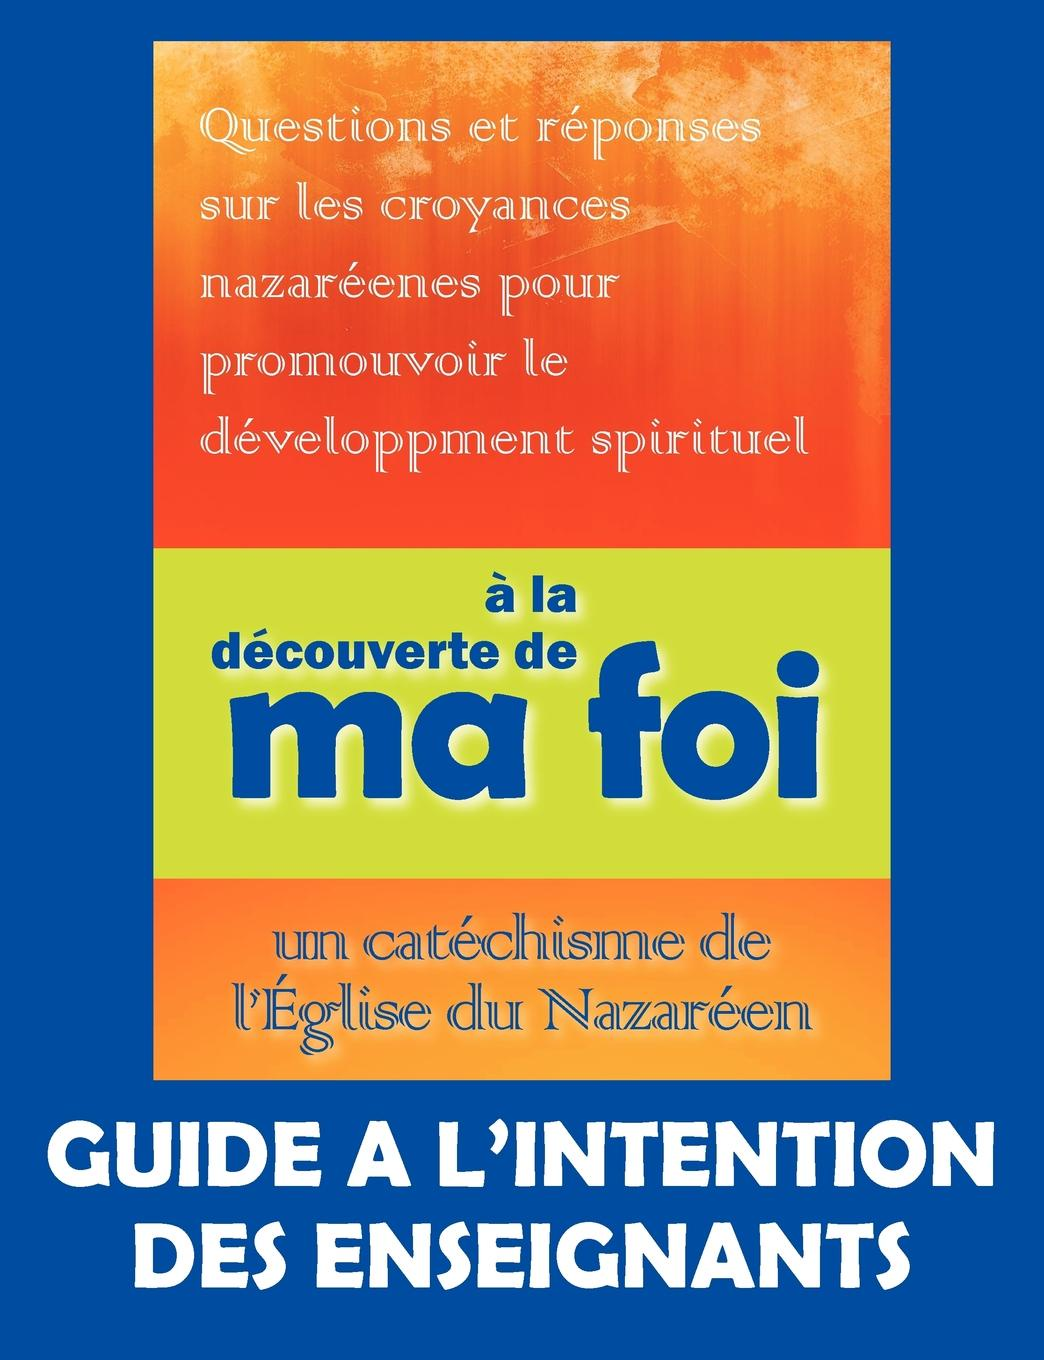 Donna L. Filmore, Roy F. Lynn A la decouverte de ma foi (Guide a l'intention des professeurs) jules august soury histoire des doctrines de psychologie physiologique contemporaines les fonctions du cerveau doctrines de l ecole de strasbourg doctrines de l ecole italienne